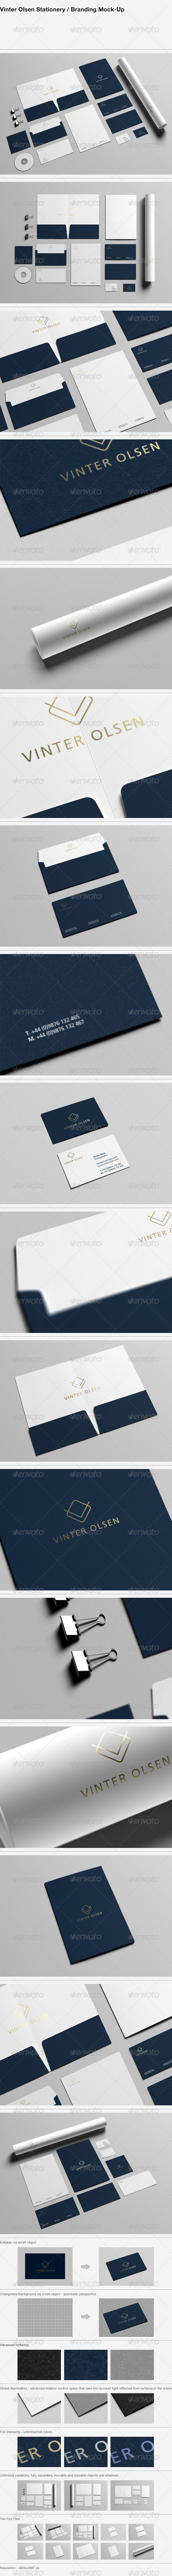 GraphicRiver Vinter Olsen Stationery Branding Mock-Up 7385322